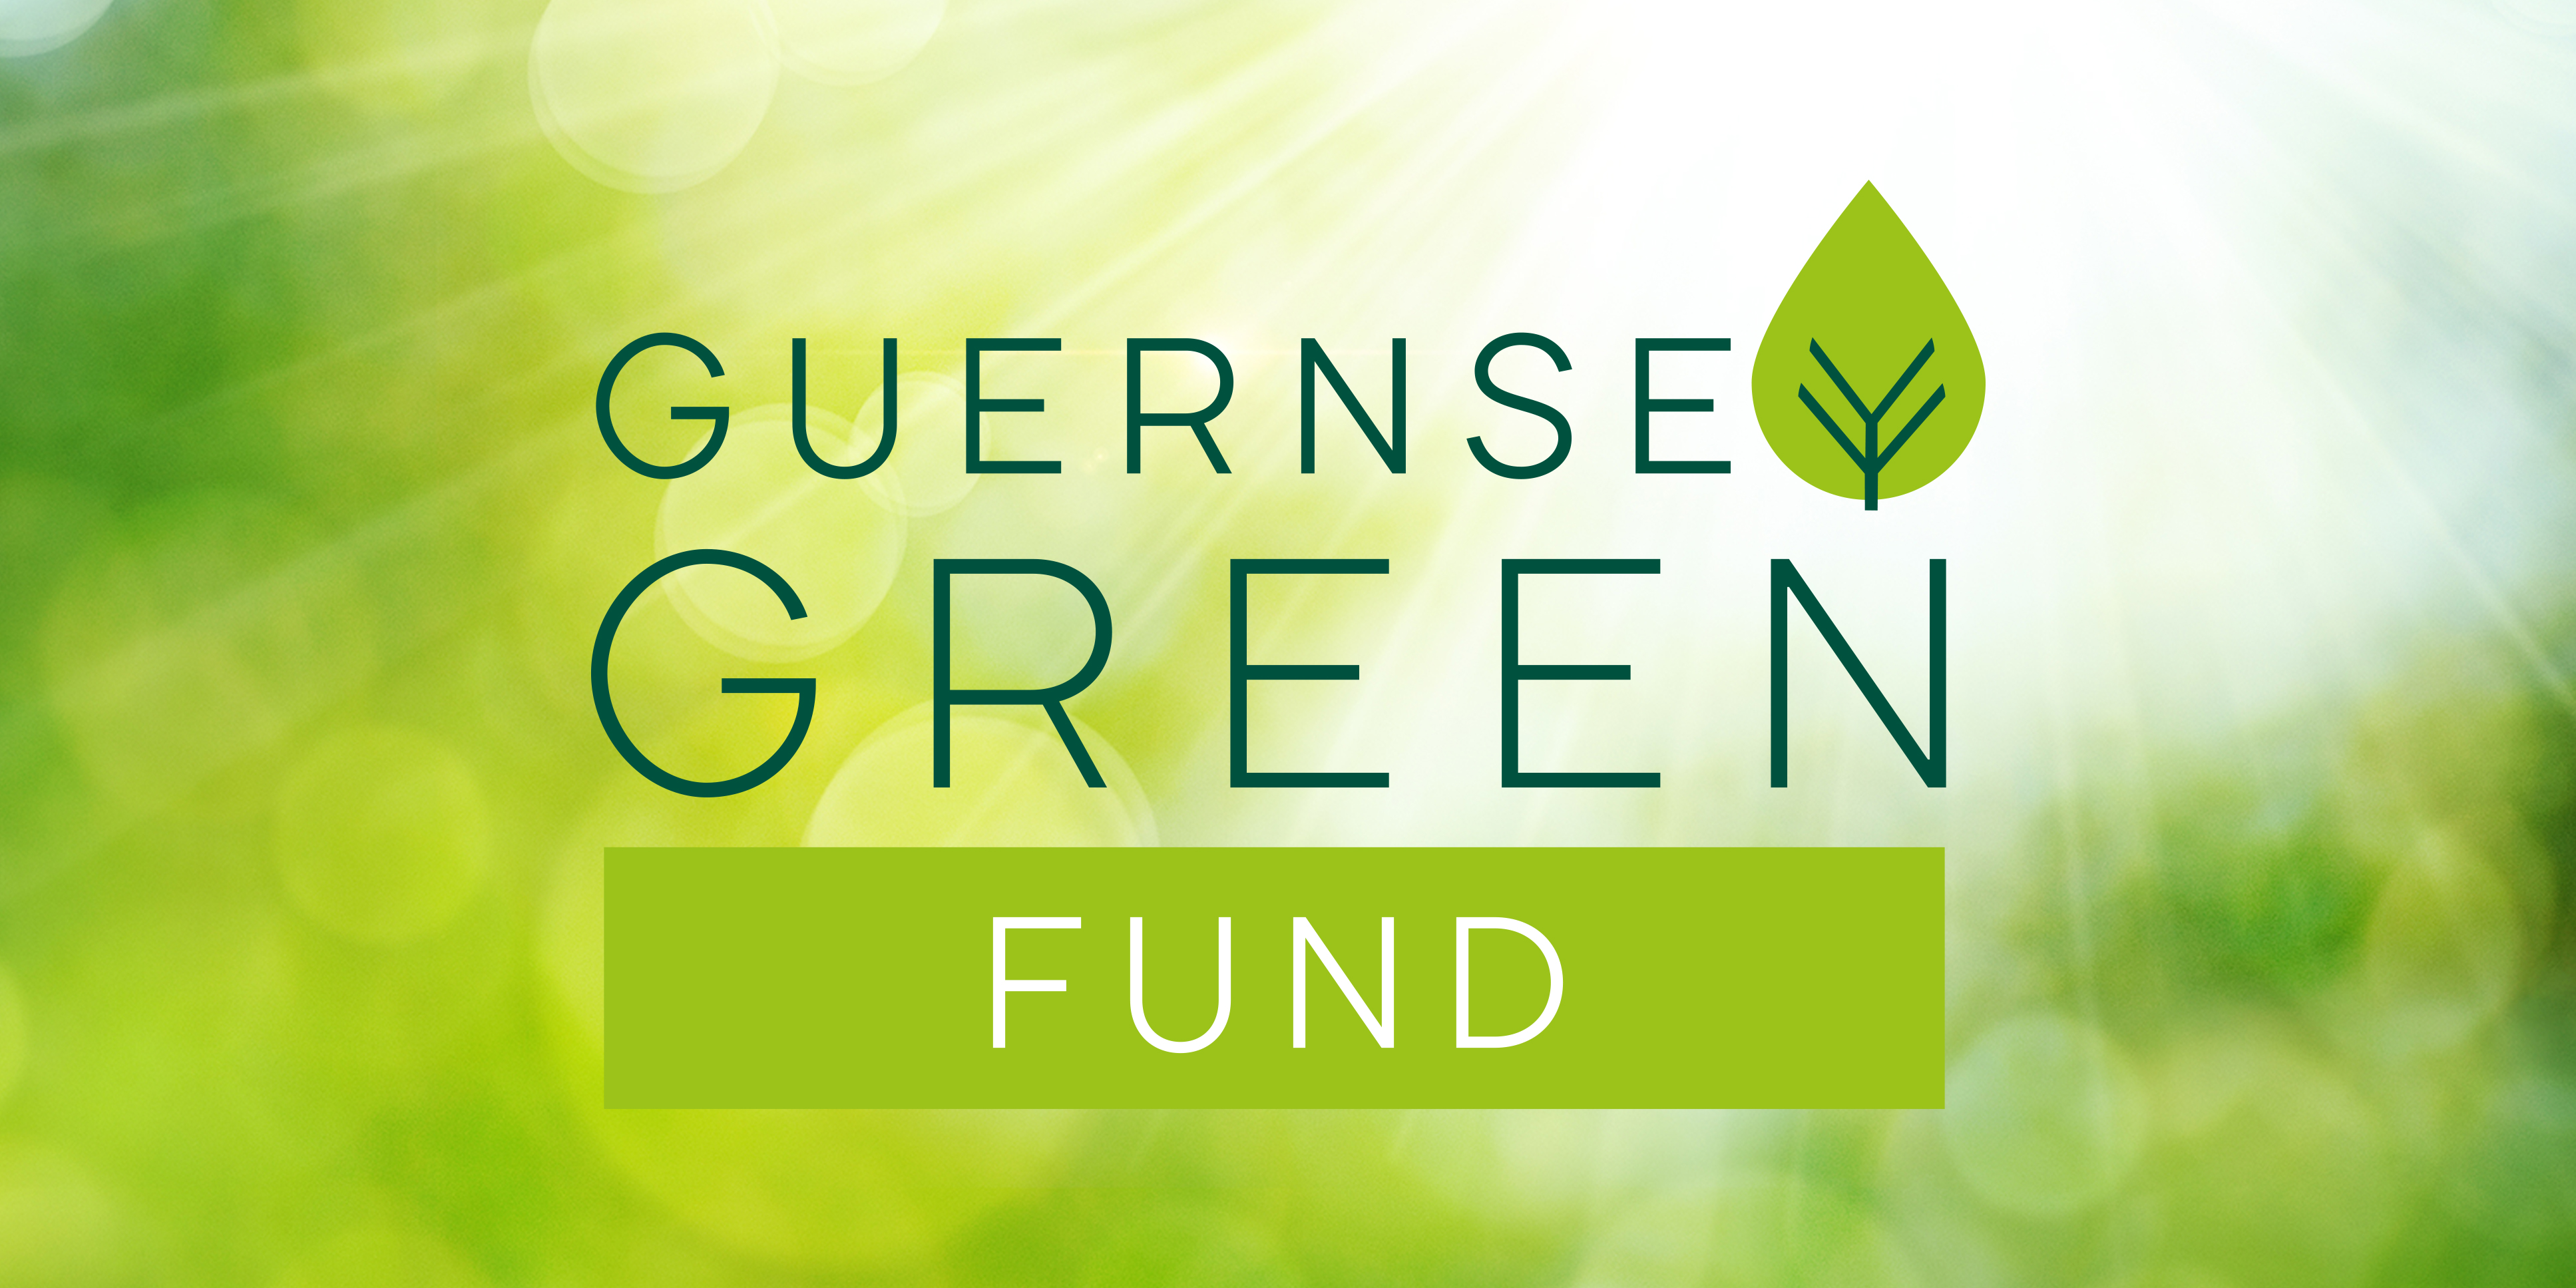 Guernsey Green Fund